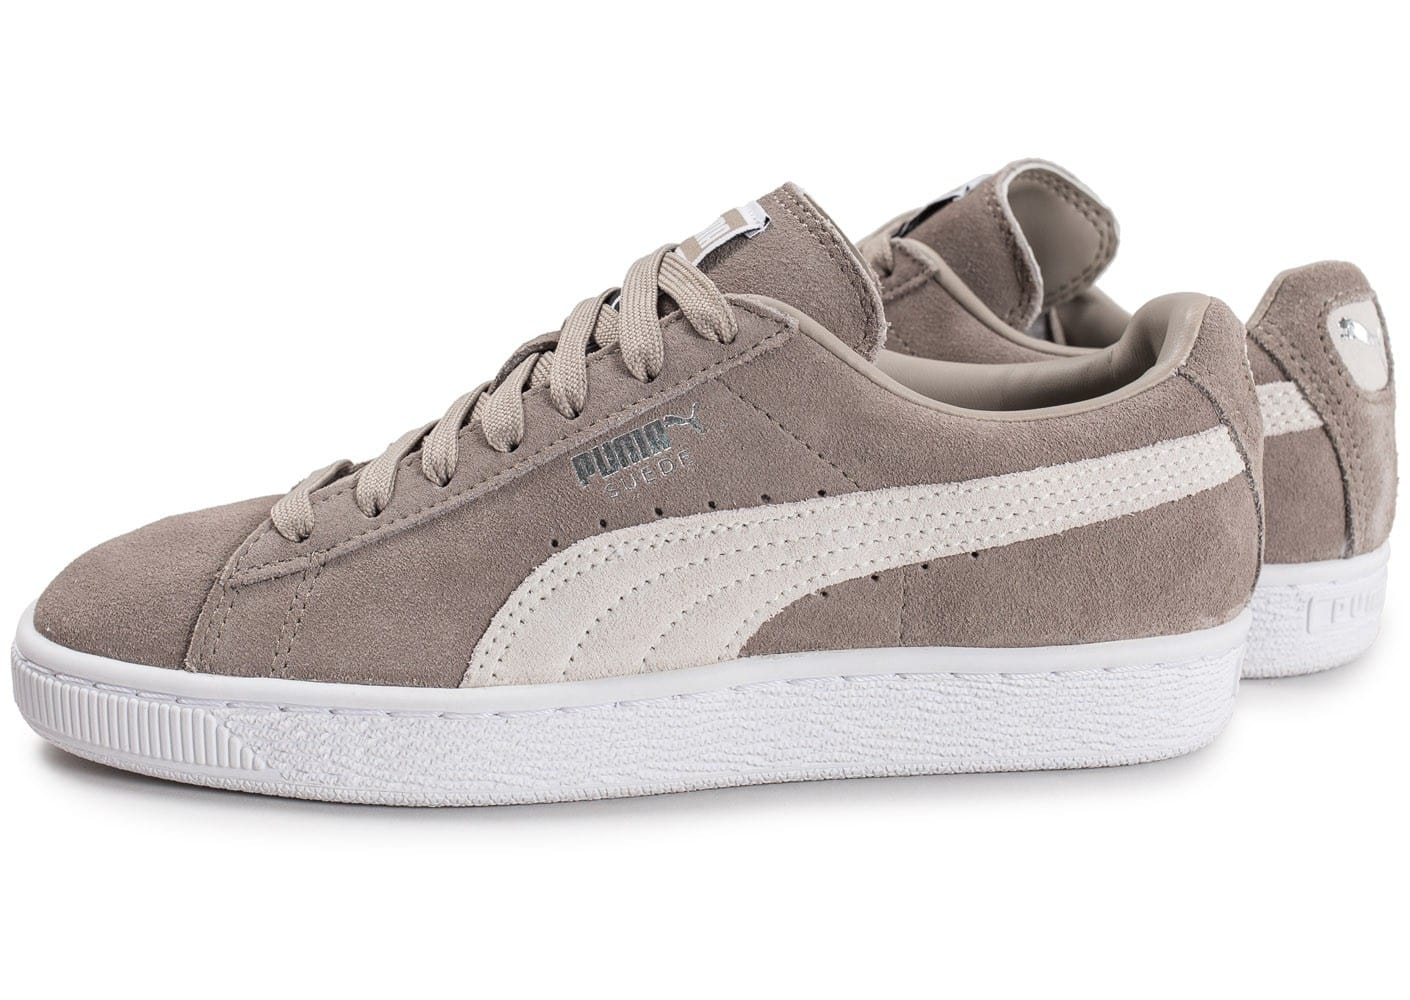 info pour 44007 fdf36 Chaussures Puma Femme Chaussure Noeud Itxopukz w8kP0nOX